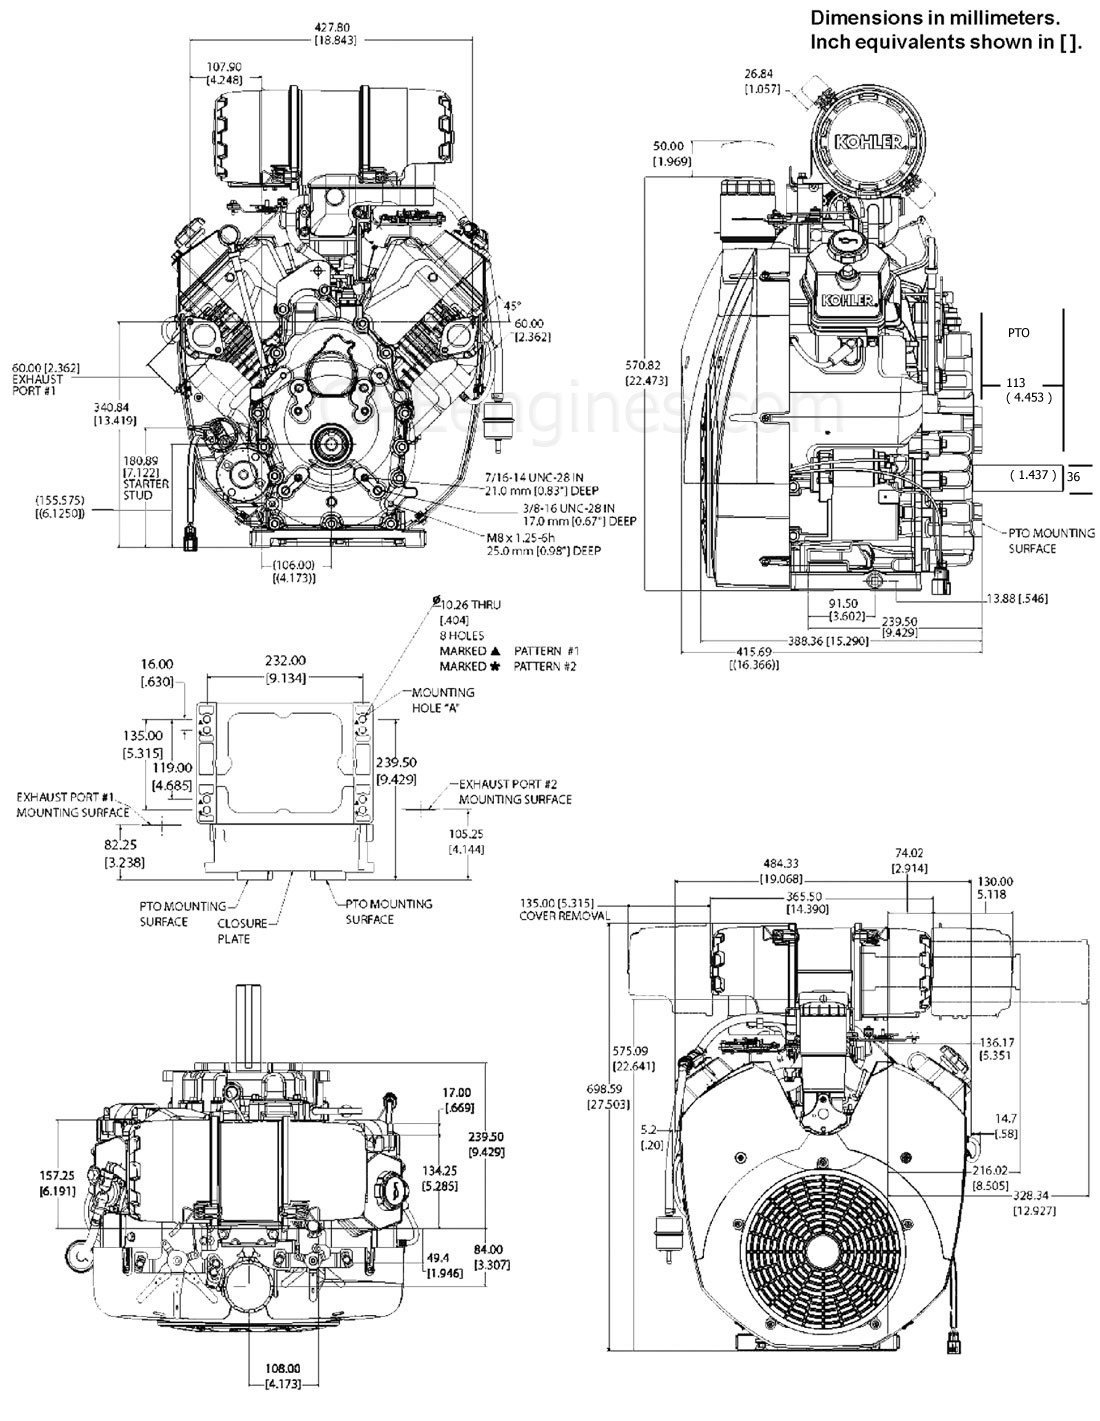 CH980_drawings ch940 ch960 ch980 ch1000 drawings kohler engines and parts store kohler 26 hp wiring diagram at suagrazia.org